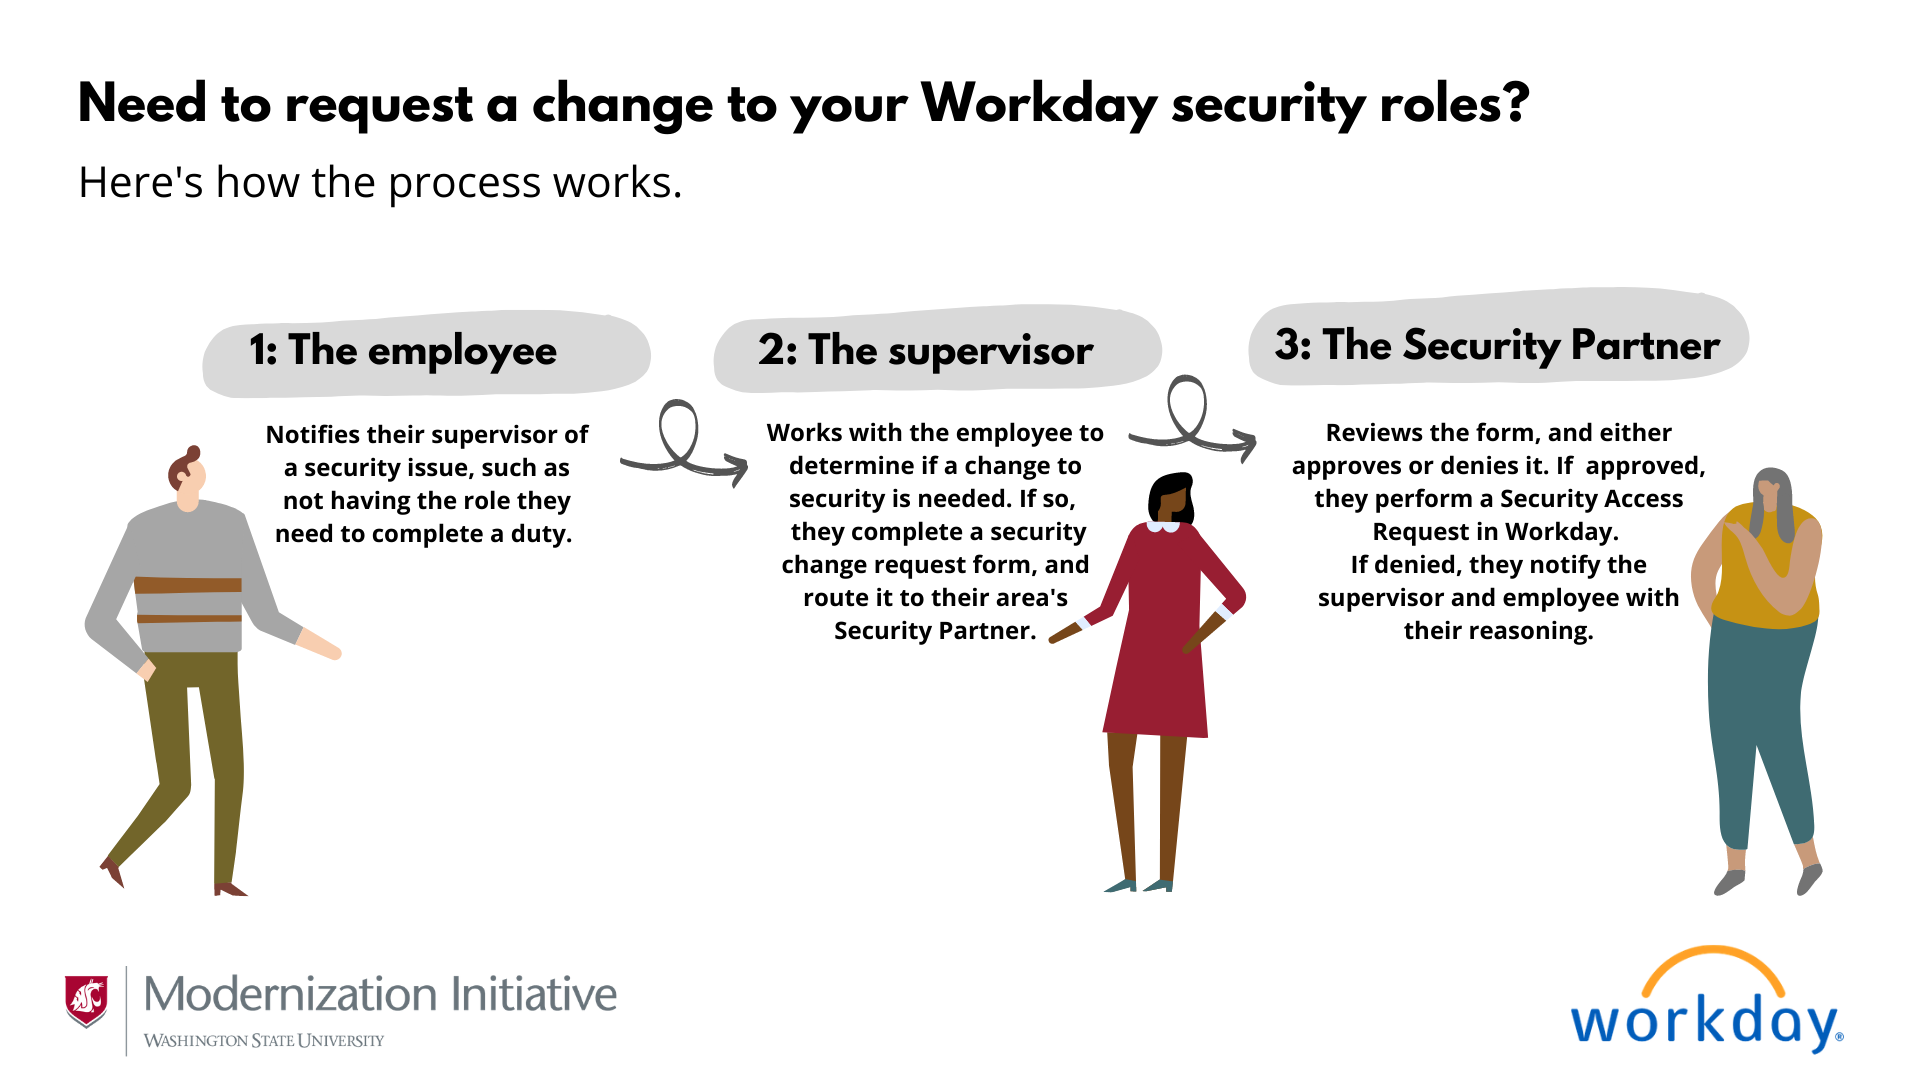 Step 1: The employee notifies their supervisor of a security issue. Step 2: The supervisor works with the employee to determine if a change is needed. If so, they complete a security change request form, and submit it to their area Security Partner. 3: The Security Partner reviews the form, and approves or denies it. If approved, they perform a Security Access Request in Workday. if denied, they notify the supervisor with their reasoning.